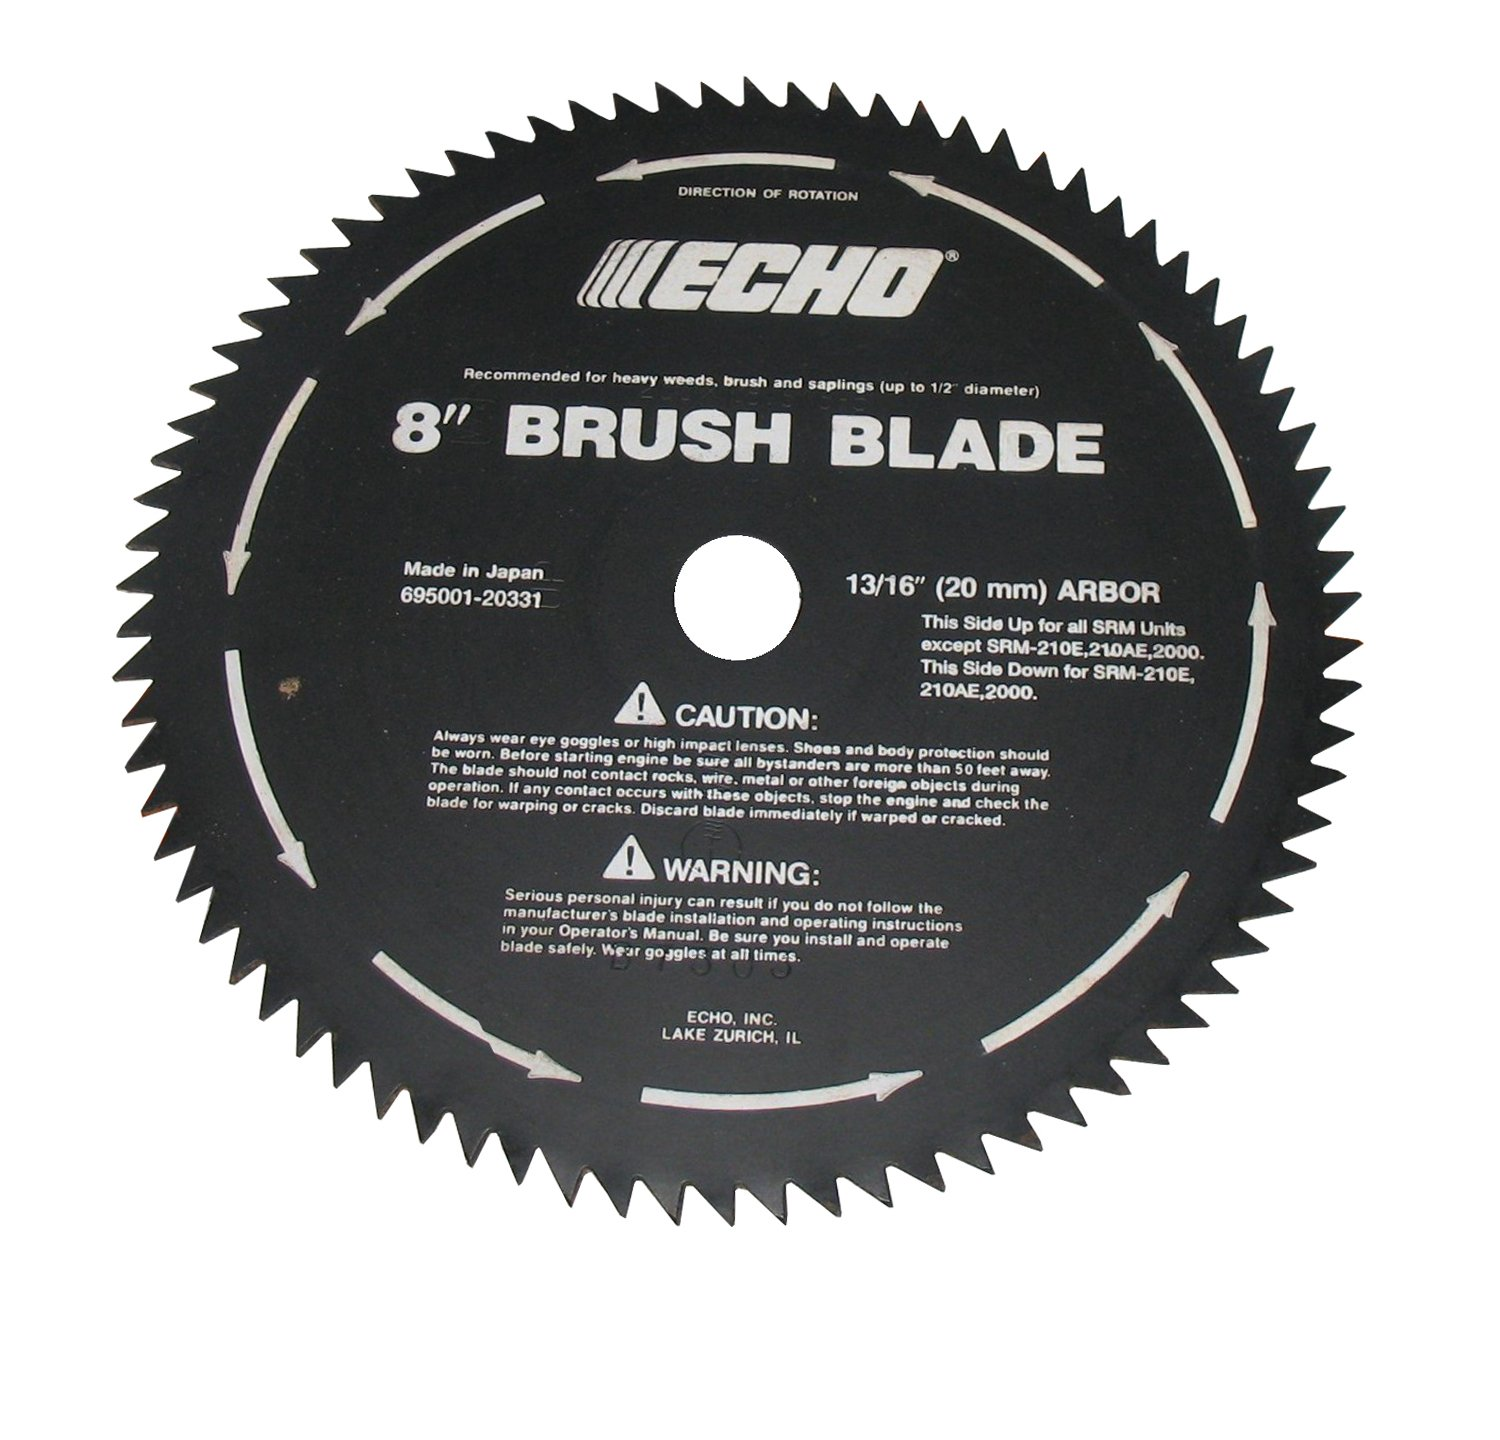 Amazon echo 69500120331 80 tooth brush blade circular saw amazon echo 69500120331 80 tooth brush blade circular saw blades garden outdoor greentooth